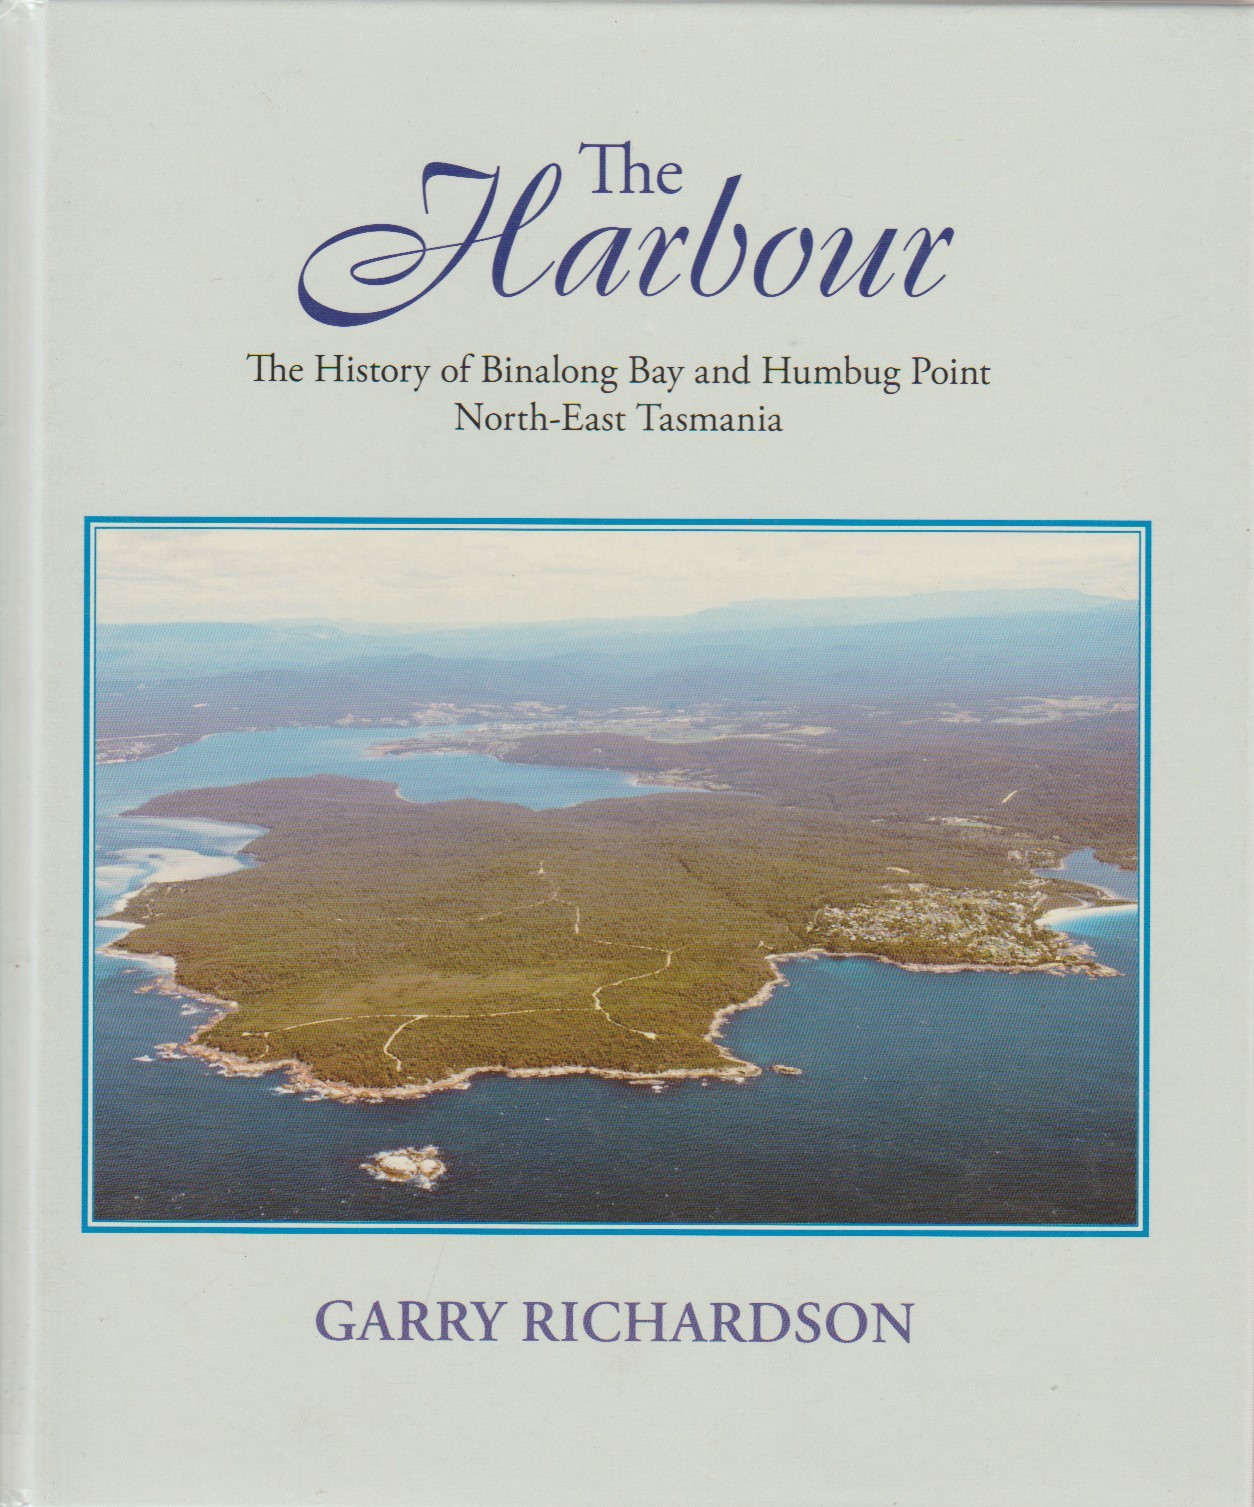 The Harbour - history of Binalong Bay & Humbug Point, North-East Tasmania